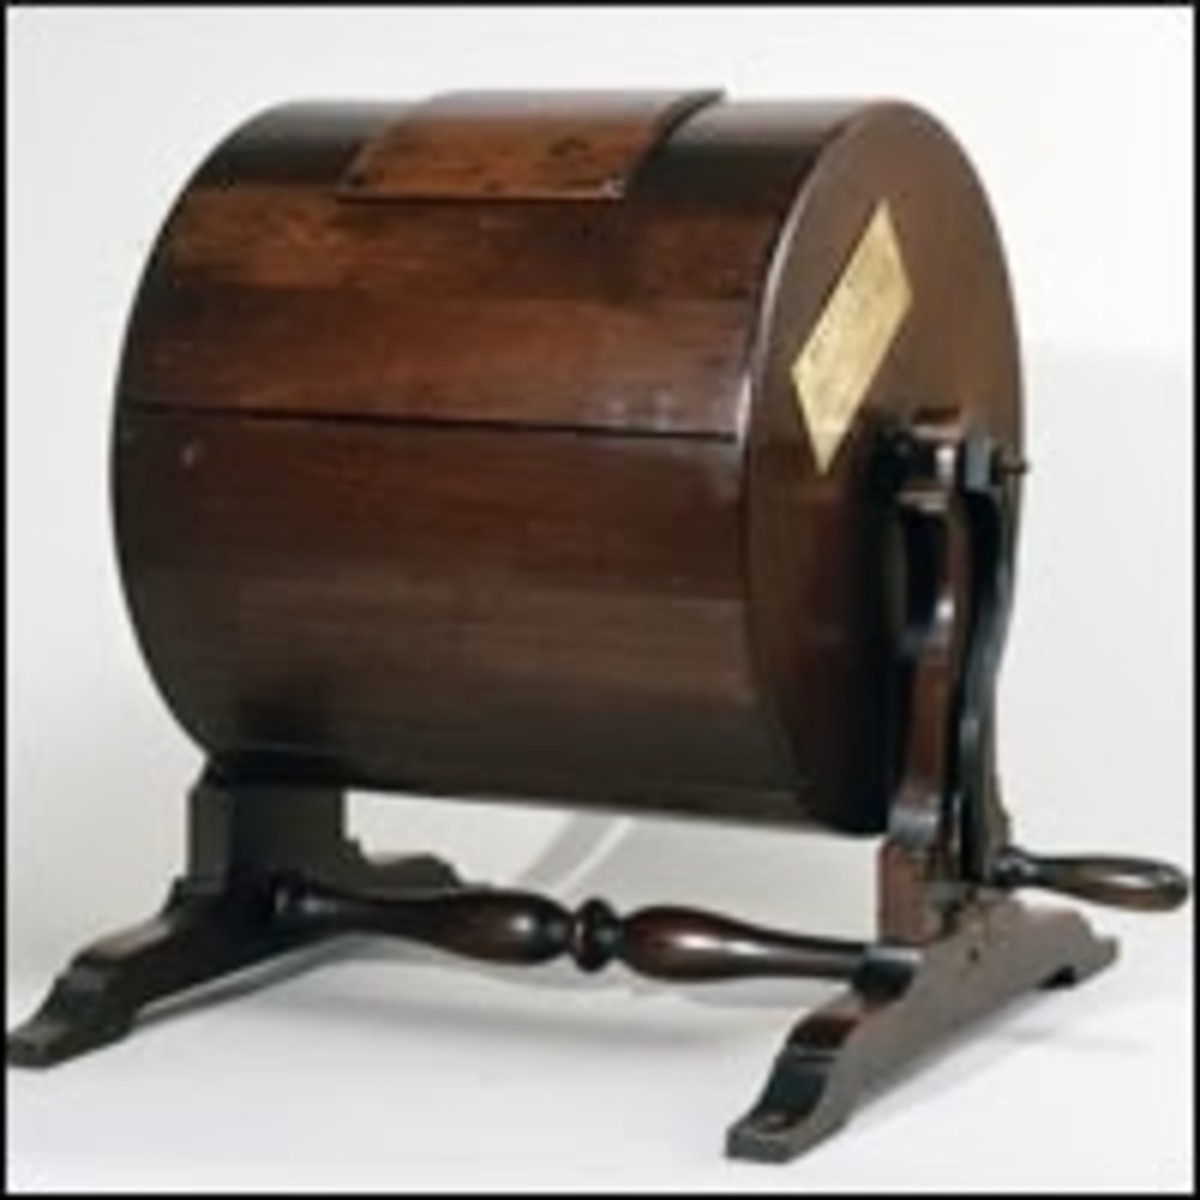 """A Draft Wheel. Names of eligible men were placed inside, and the wheel was then turned several times. The men whose names were then drawn were considered """"conscripted"""" or """"drafted""""."""